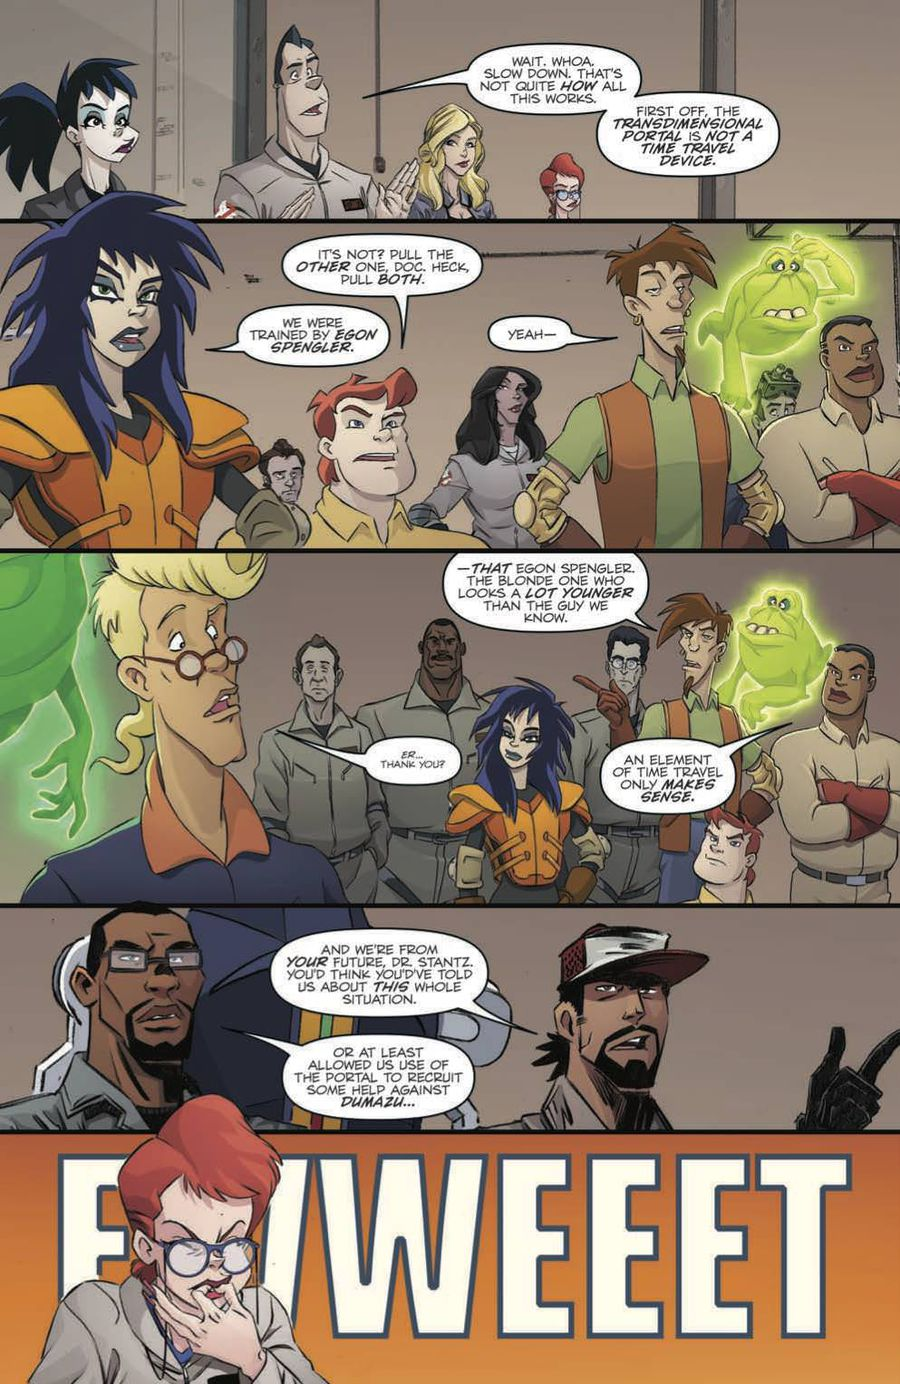 Ghostbusters: Crossing Over Issue 3 Page 5